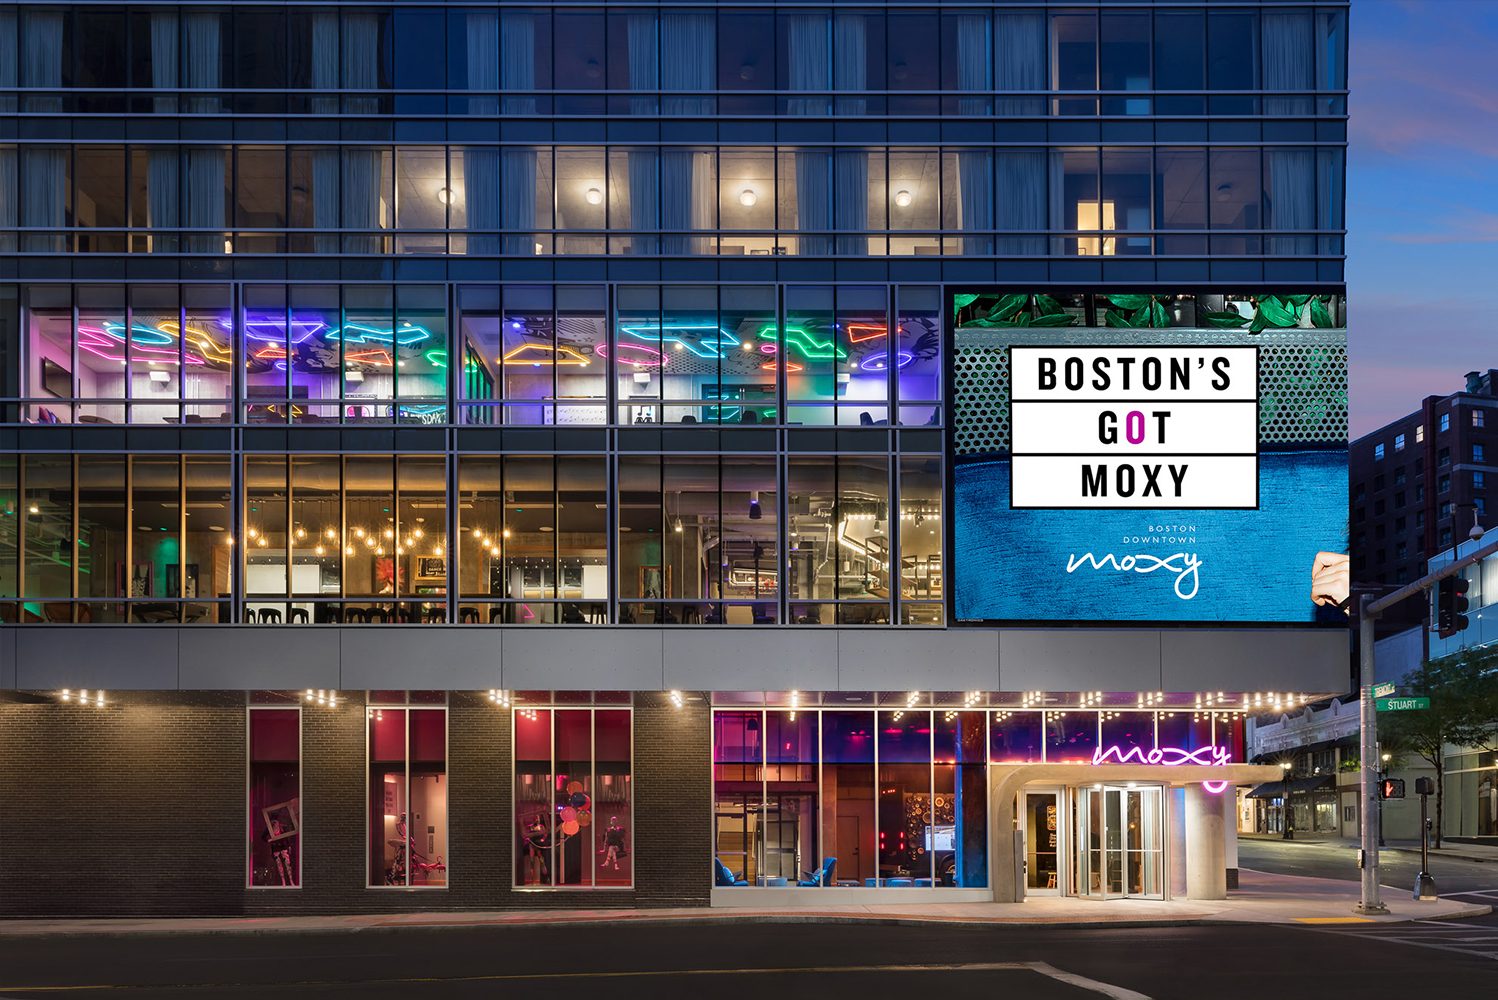 Located in the heart of Boston's Theater District, Moxy Boston Downtown opened as part of Marriott International's Moxy brand.